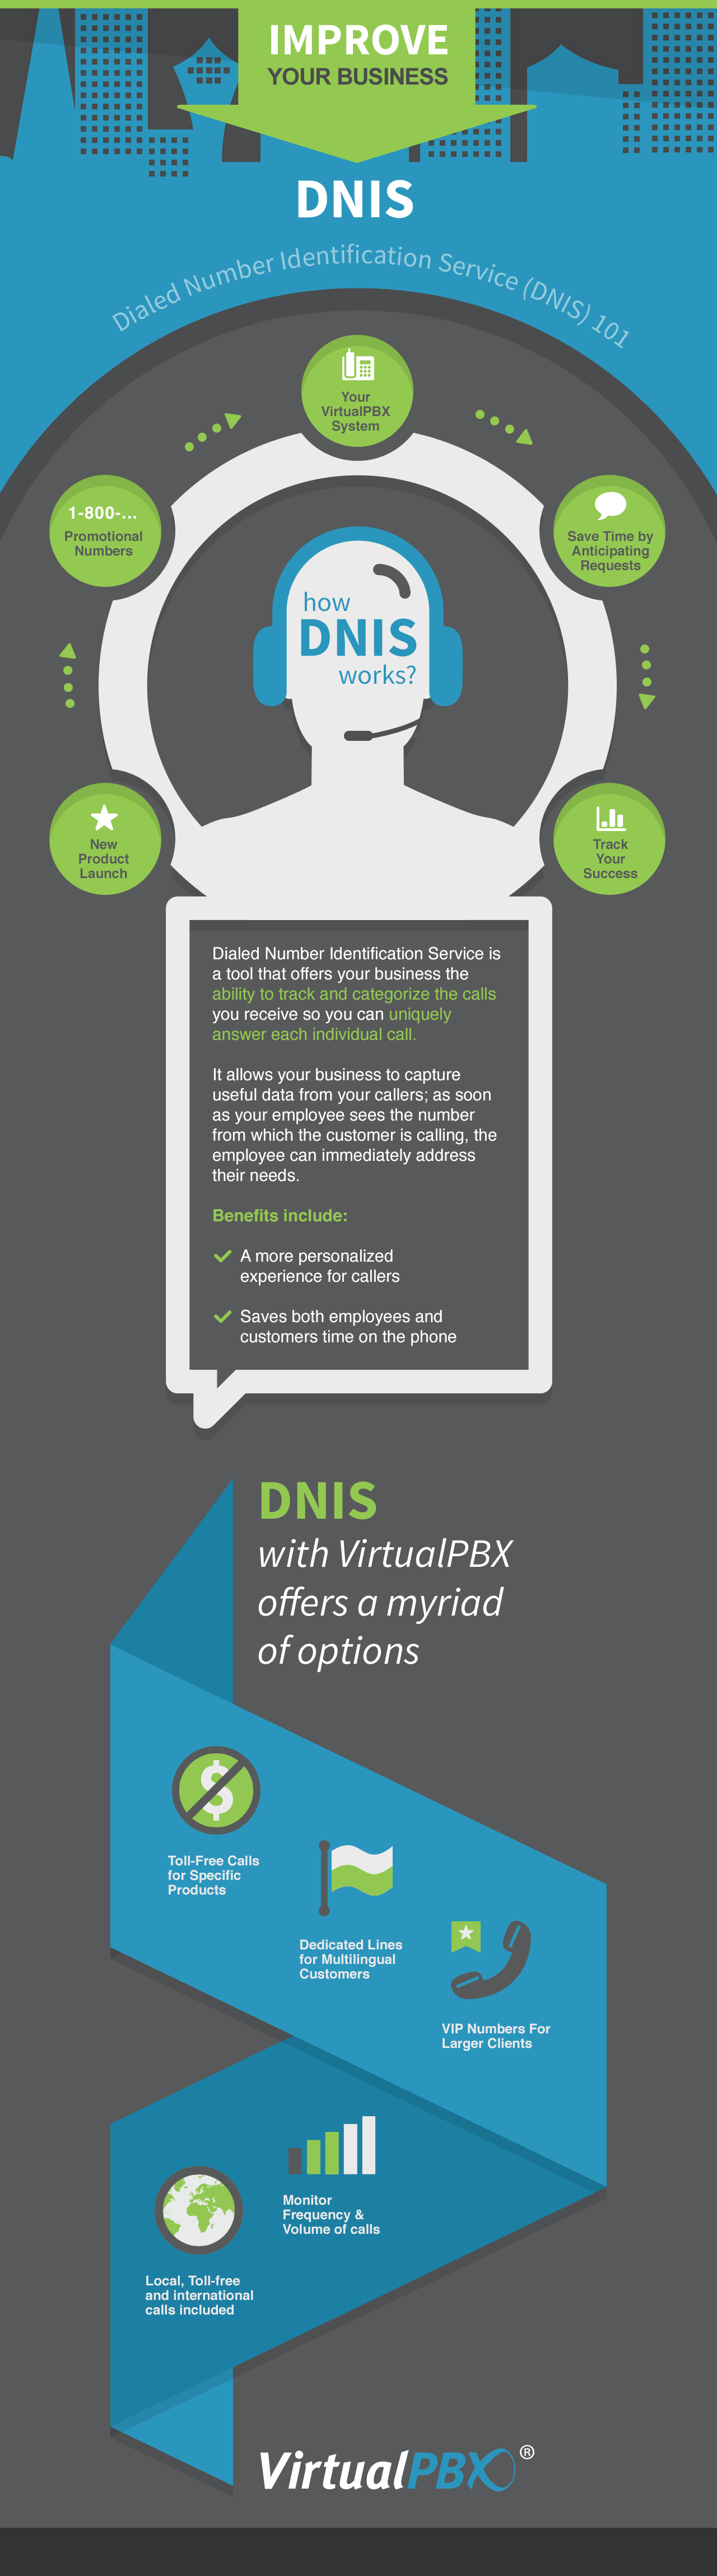 DNIS Explained